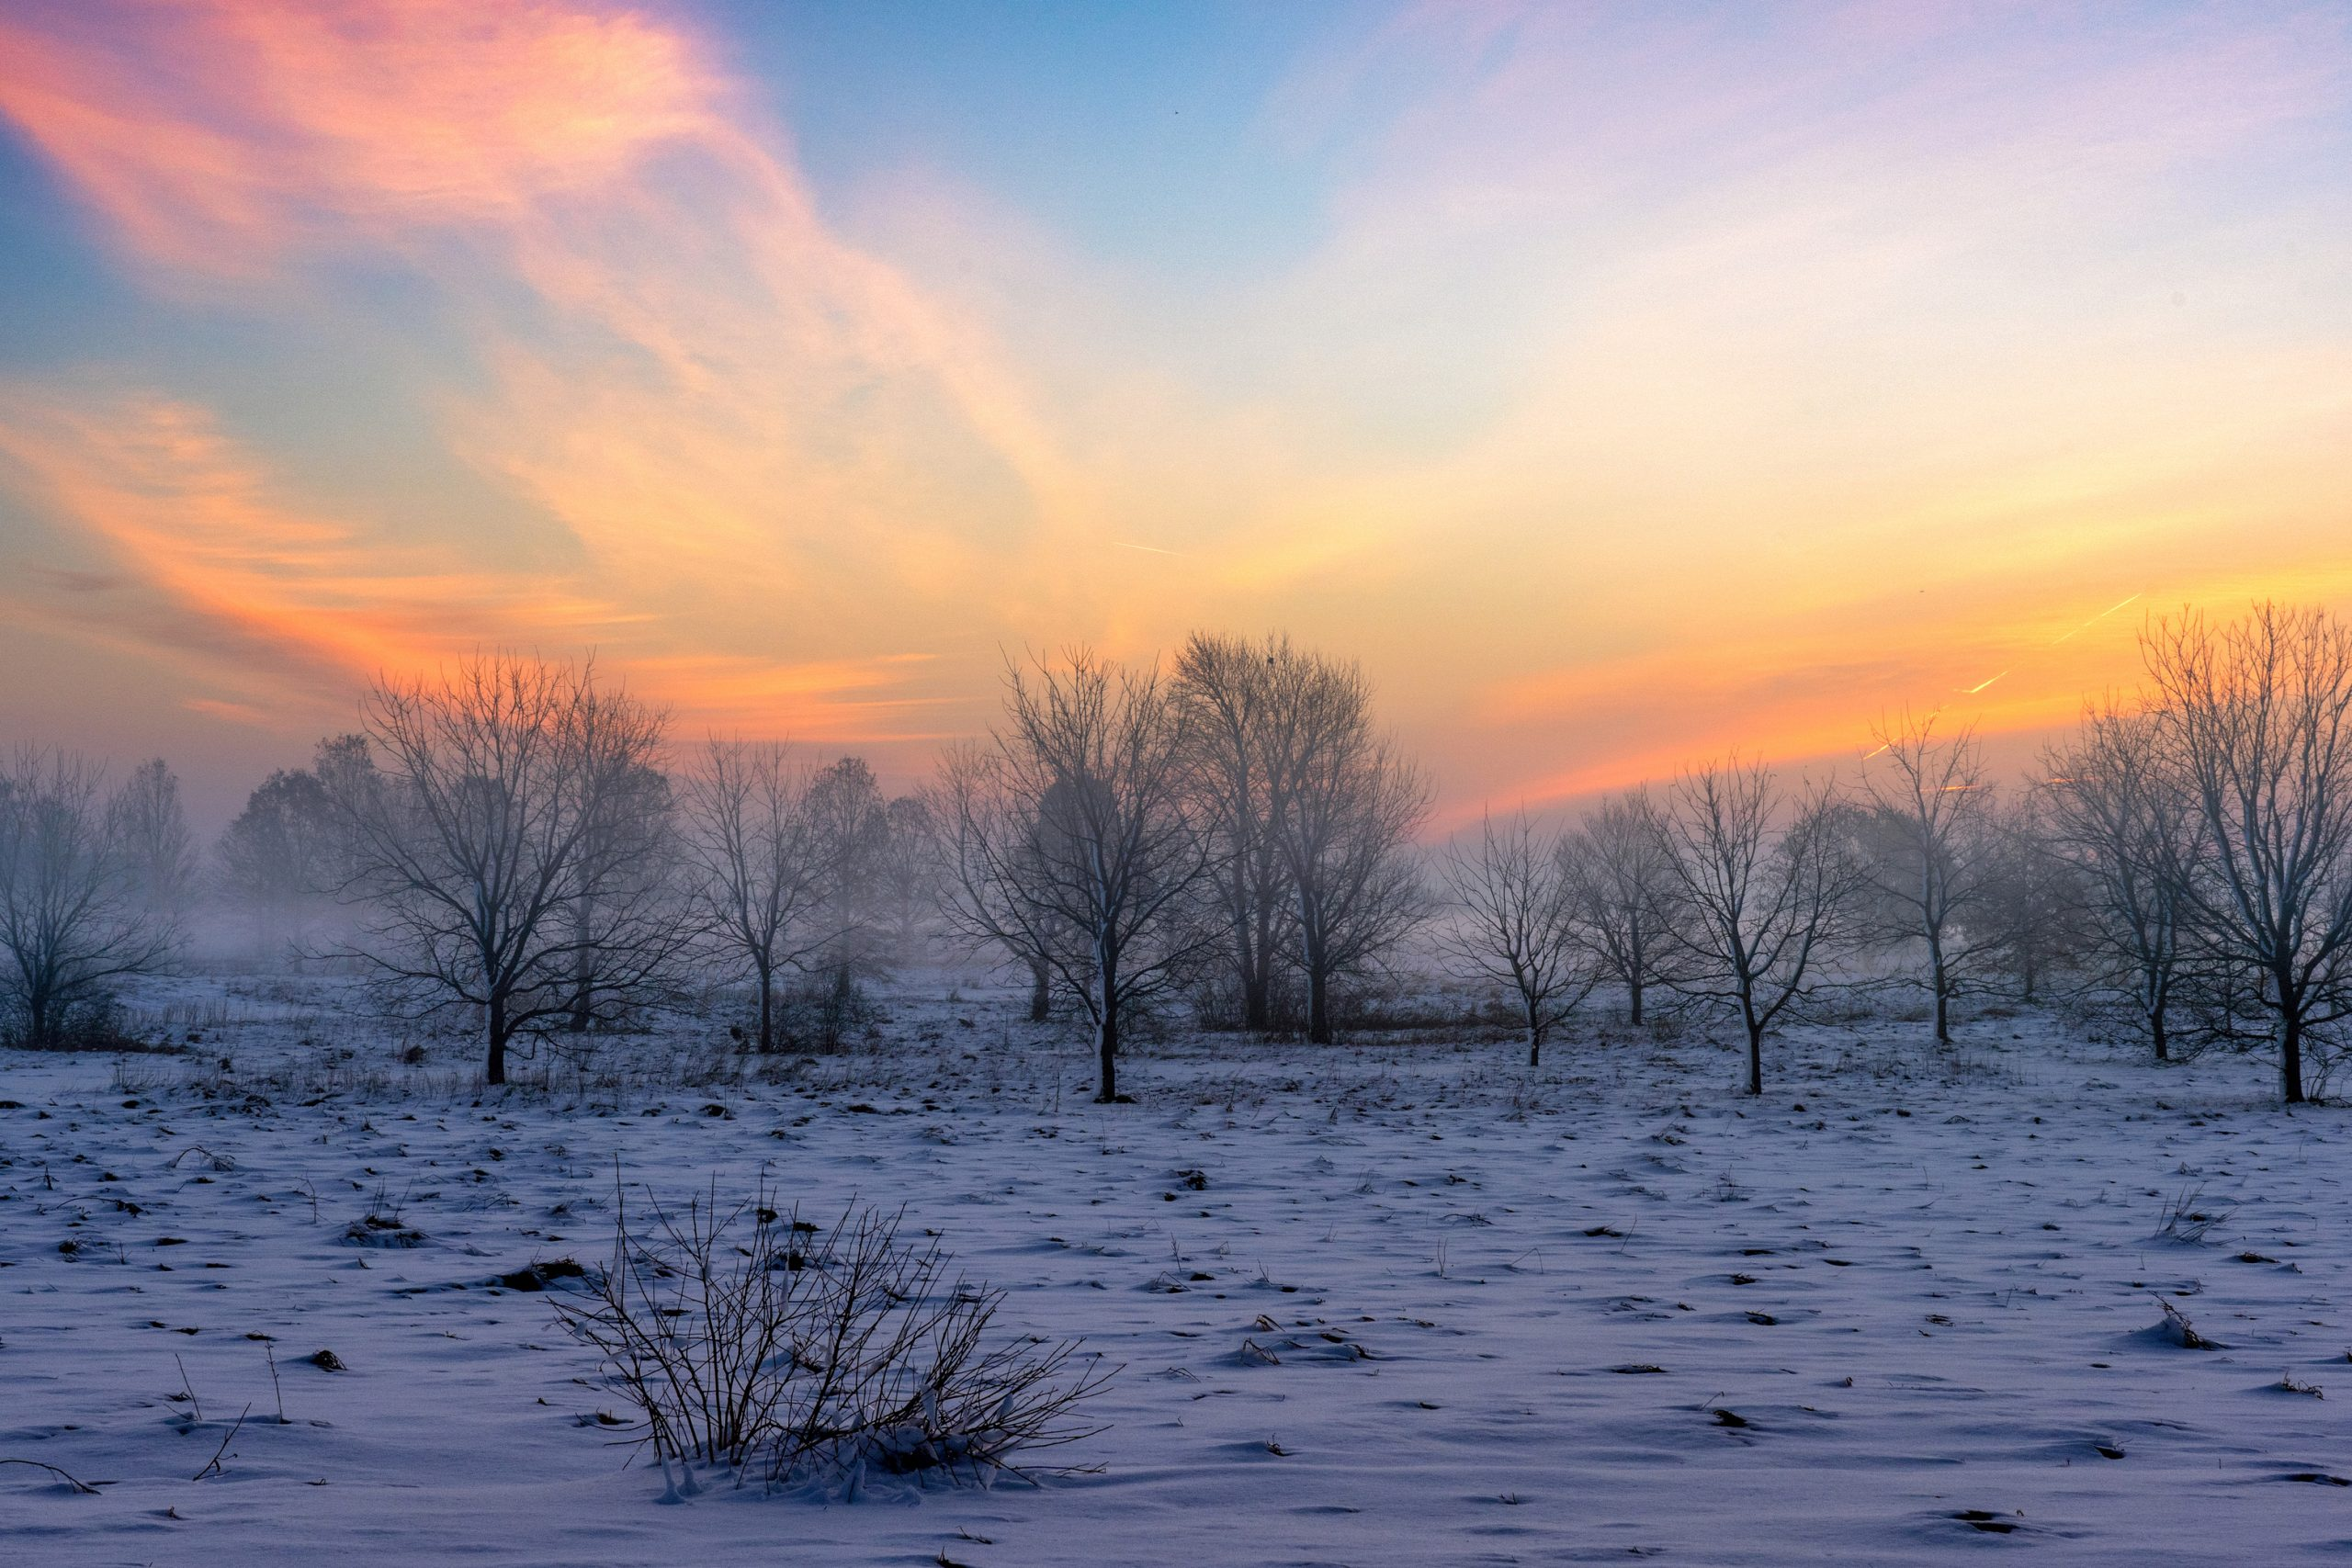 On this January day, warmth seems to float overhead while the cold stays its ground. nature, landscape, sky, winter, snow, tree, plant Photo: Timothy Chapman